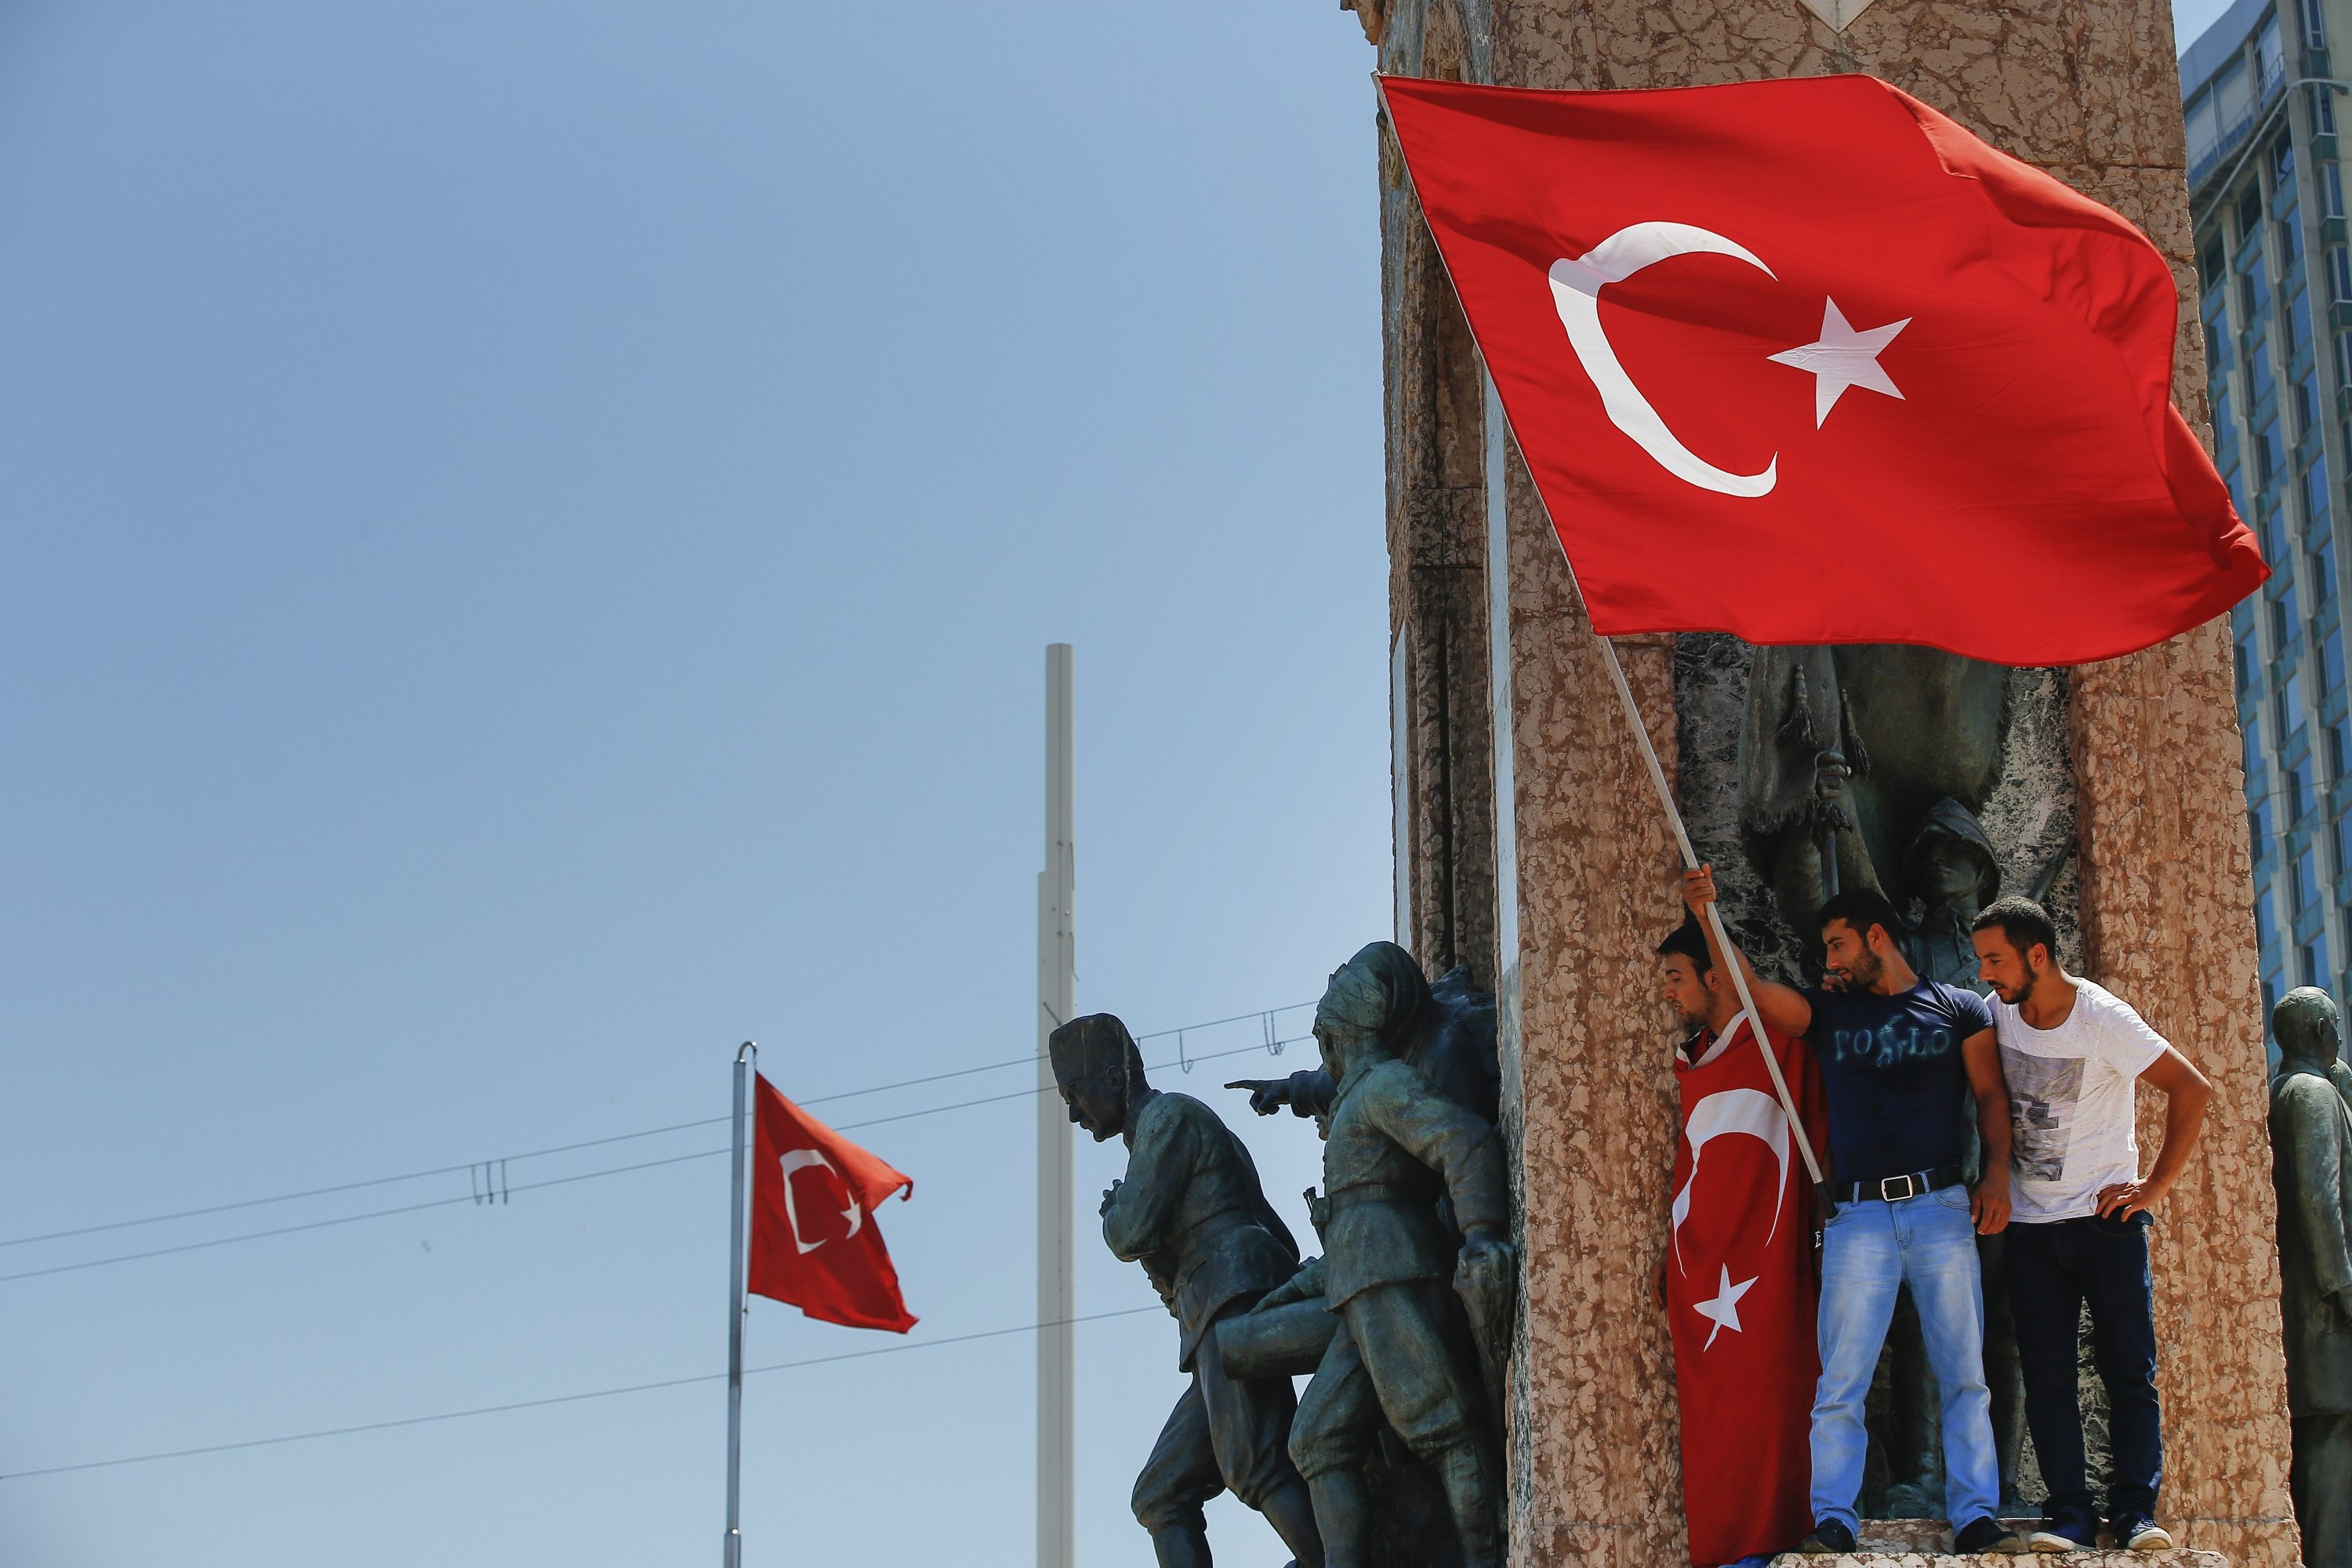 People protesting the coup wave a Turkish flag on top of the monument in Taksim Square, Istanbul, Turkey, July 16, 2016. (AP Photo)